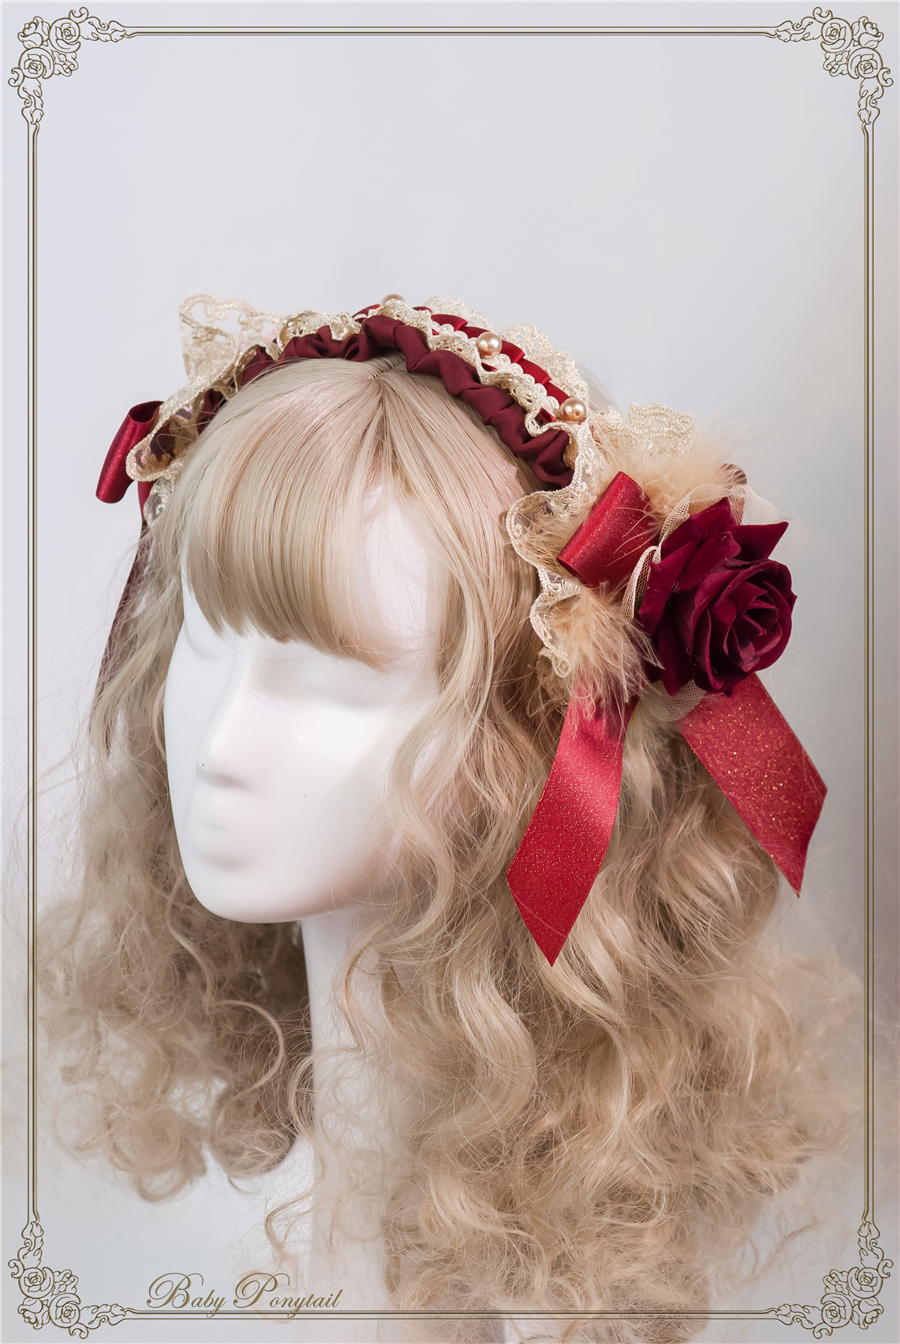 Baby Ponytail_Stock photo_Circus Princess_Rose Head Dress Red_02.jpg